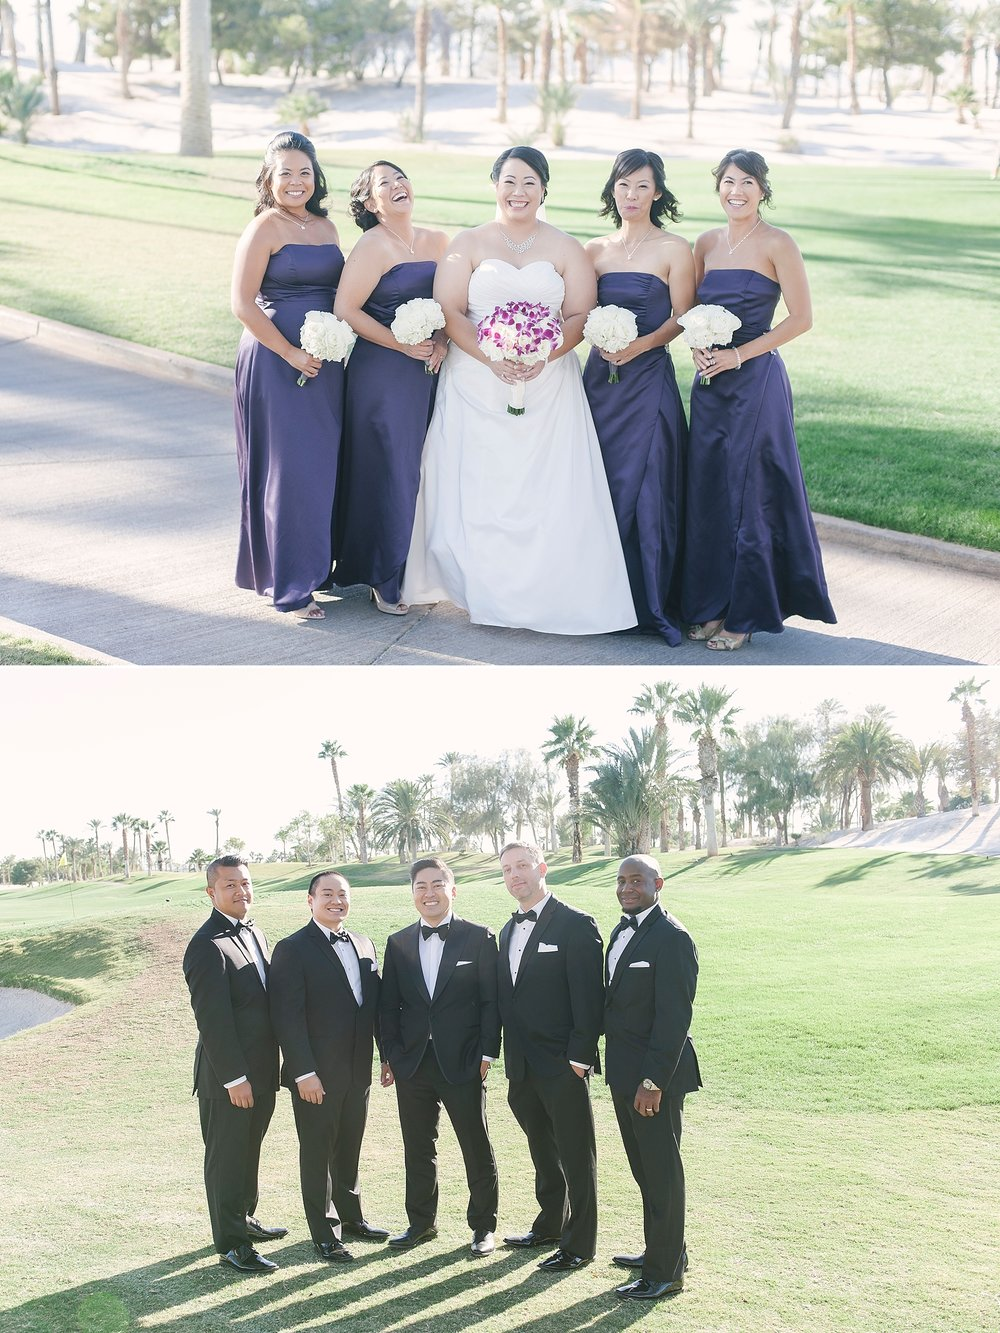 Cili_Golf_Club_Las_vegas_wedding_photography-16.jpg